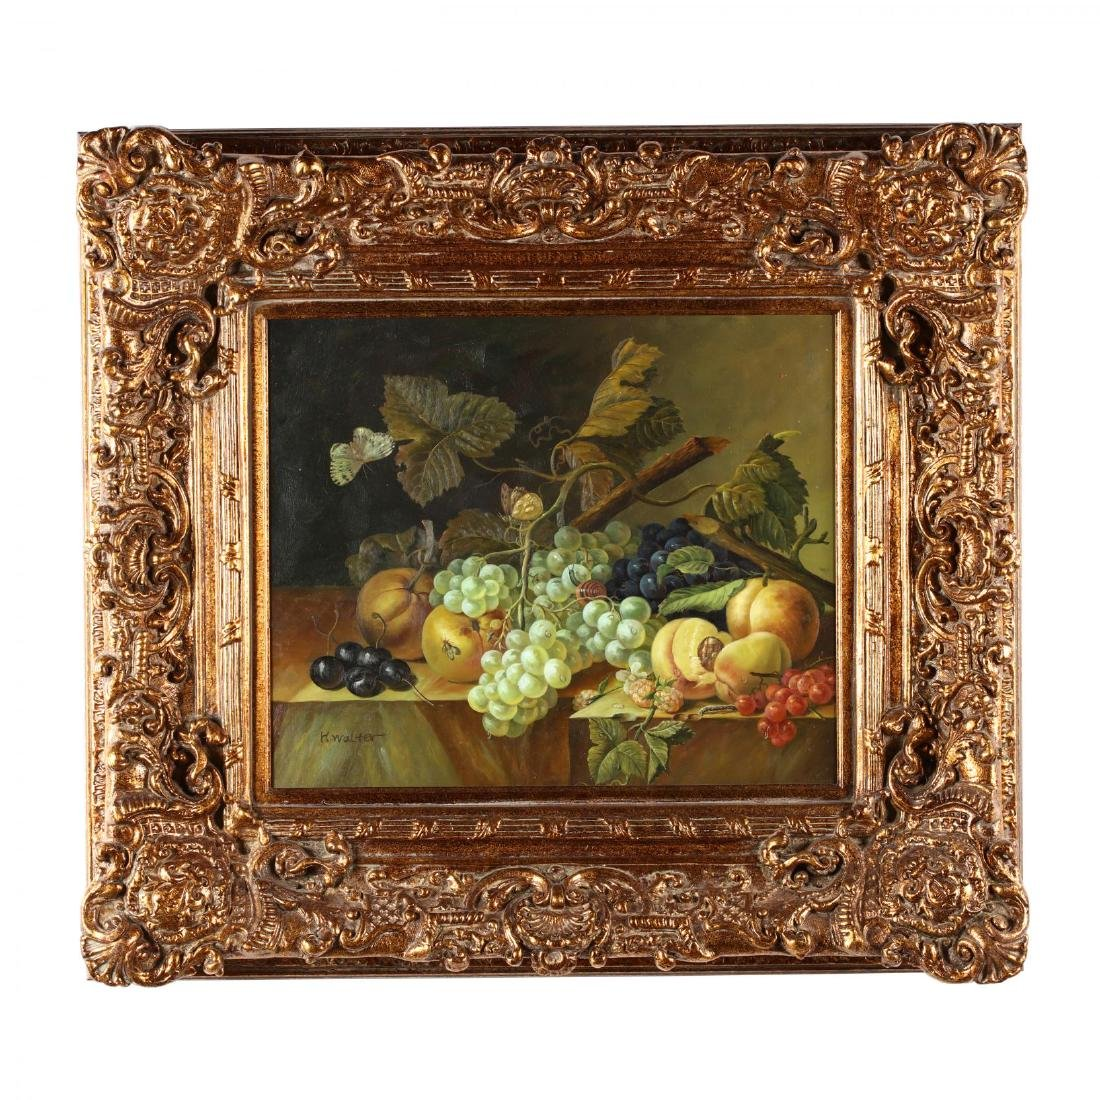 A Contemporary Decorative Still Life Painting